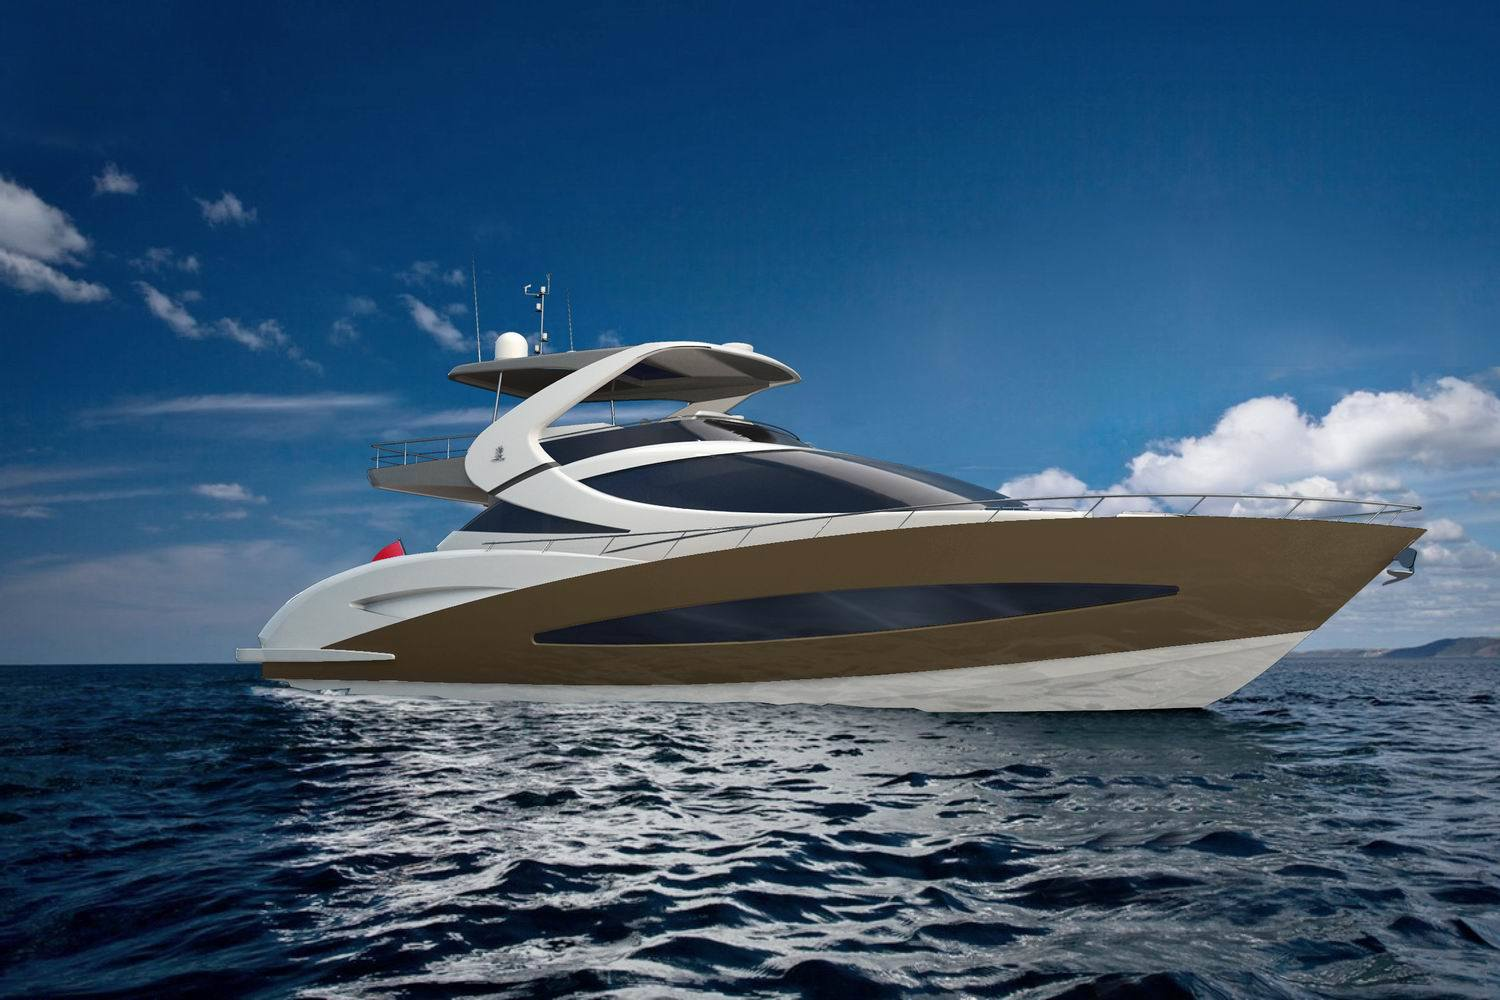 Sea Stella 78 Luxury Motor Yacht